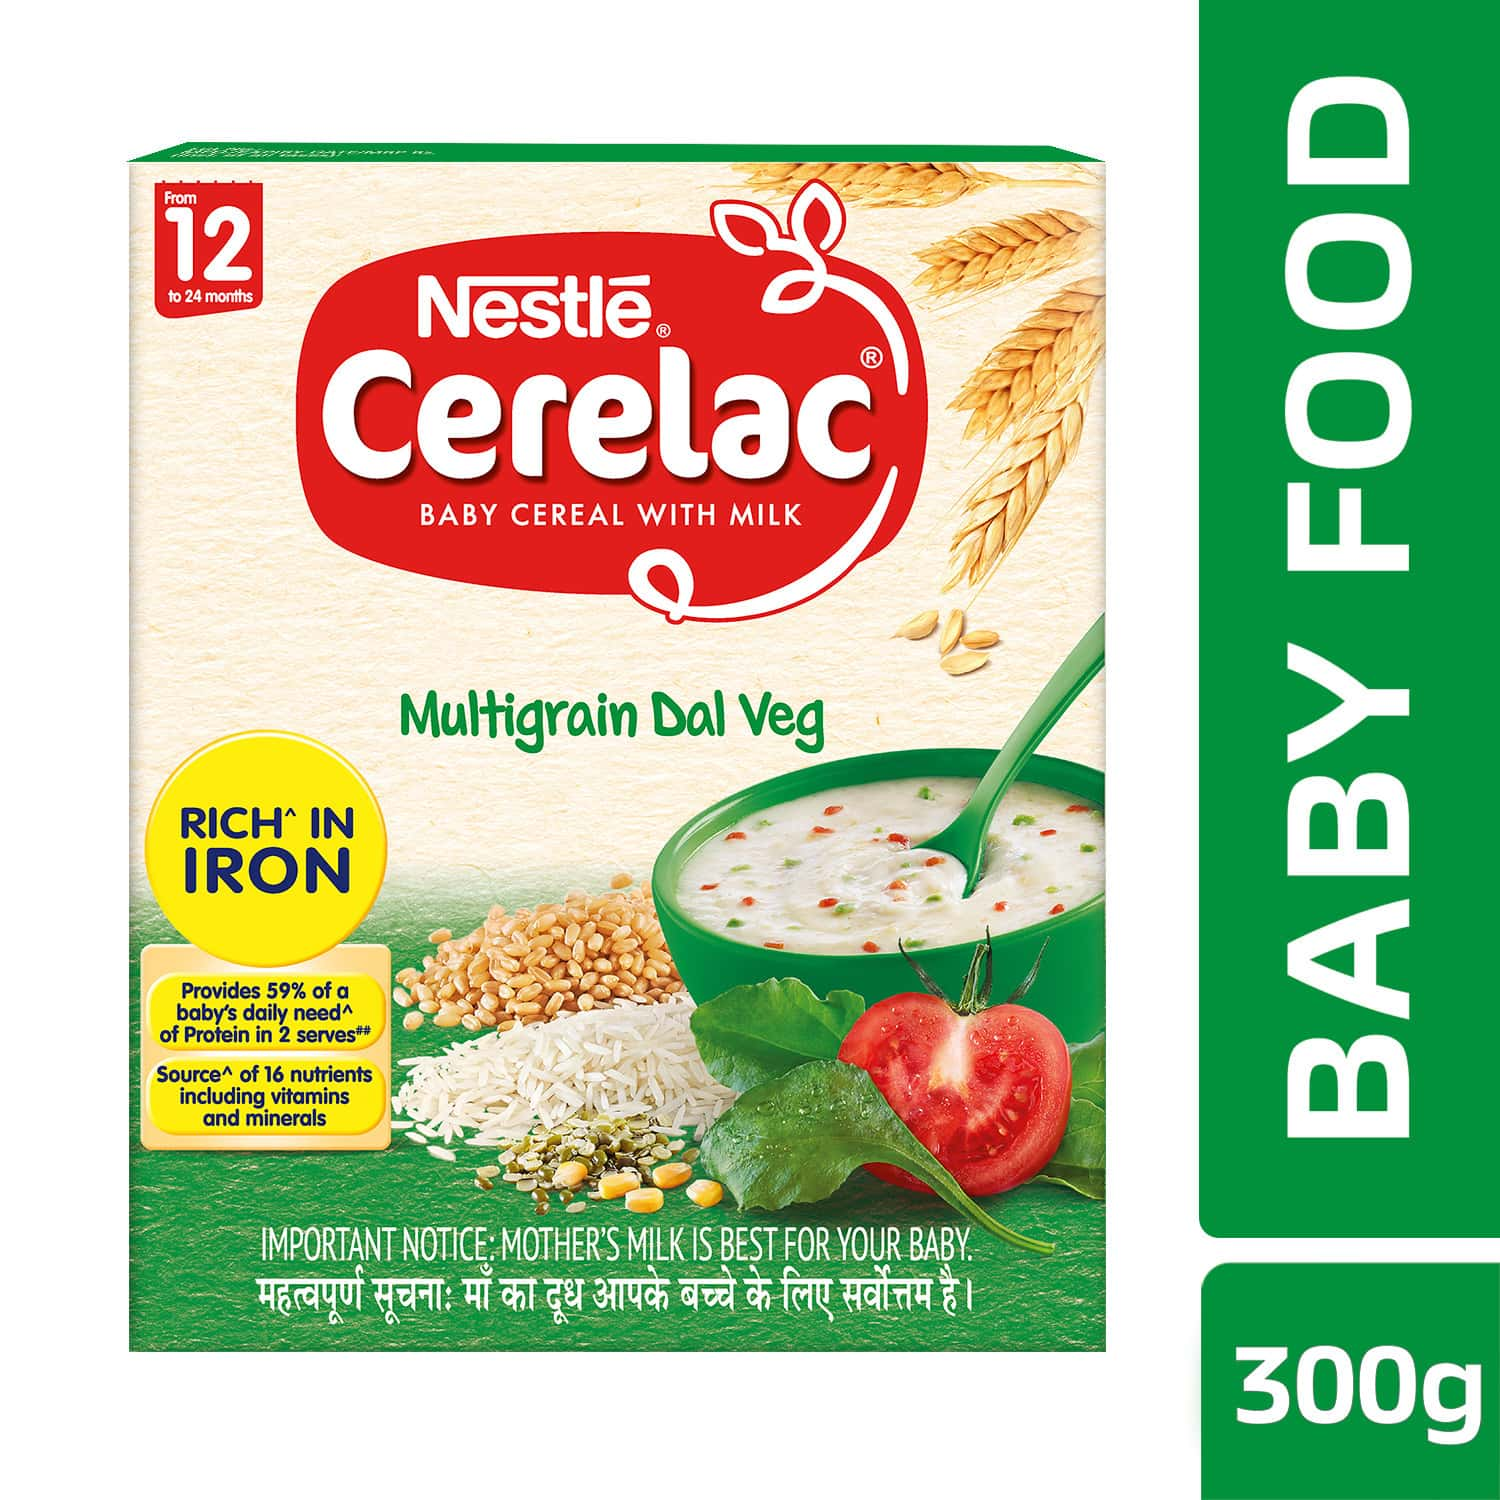 Nestle Cerelac Baby Cereal With Milk Multigrain Dal Veg Baby Food (from 12 Months) Box Of 300 G